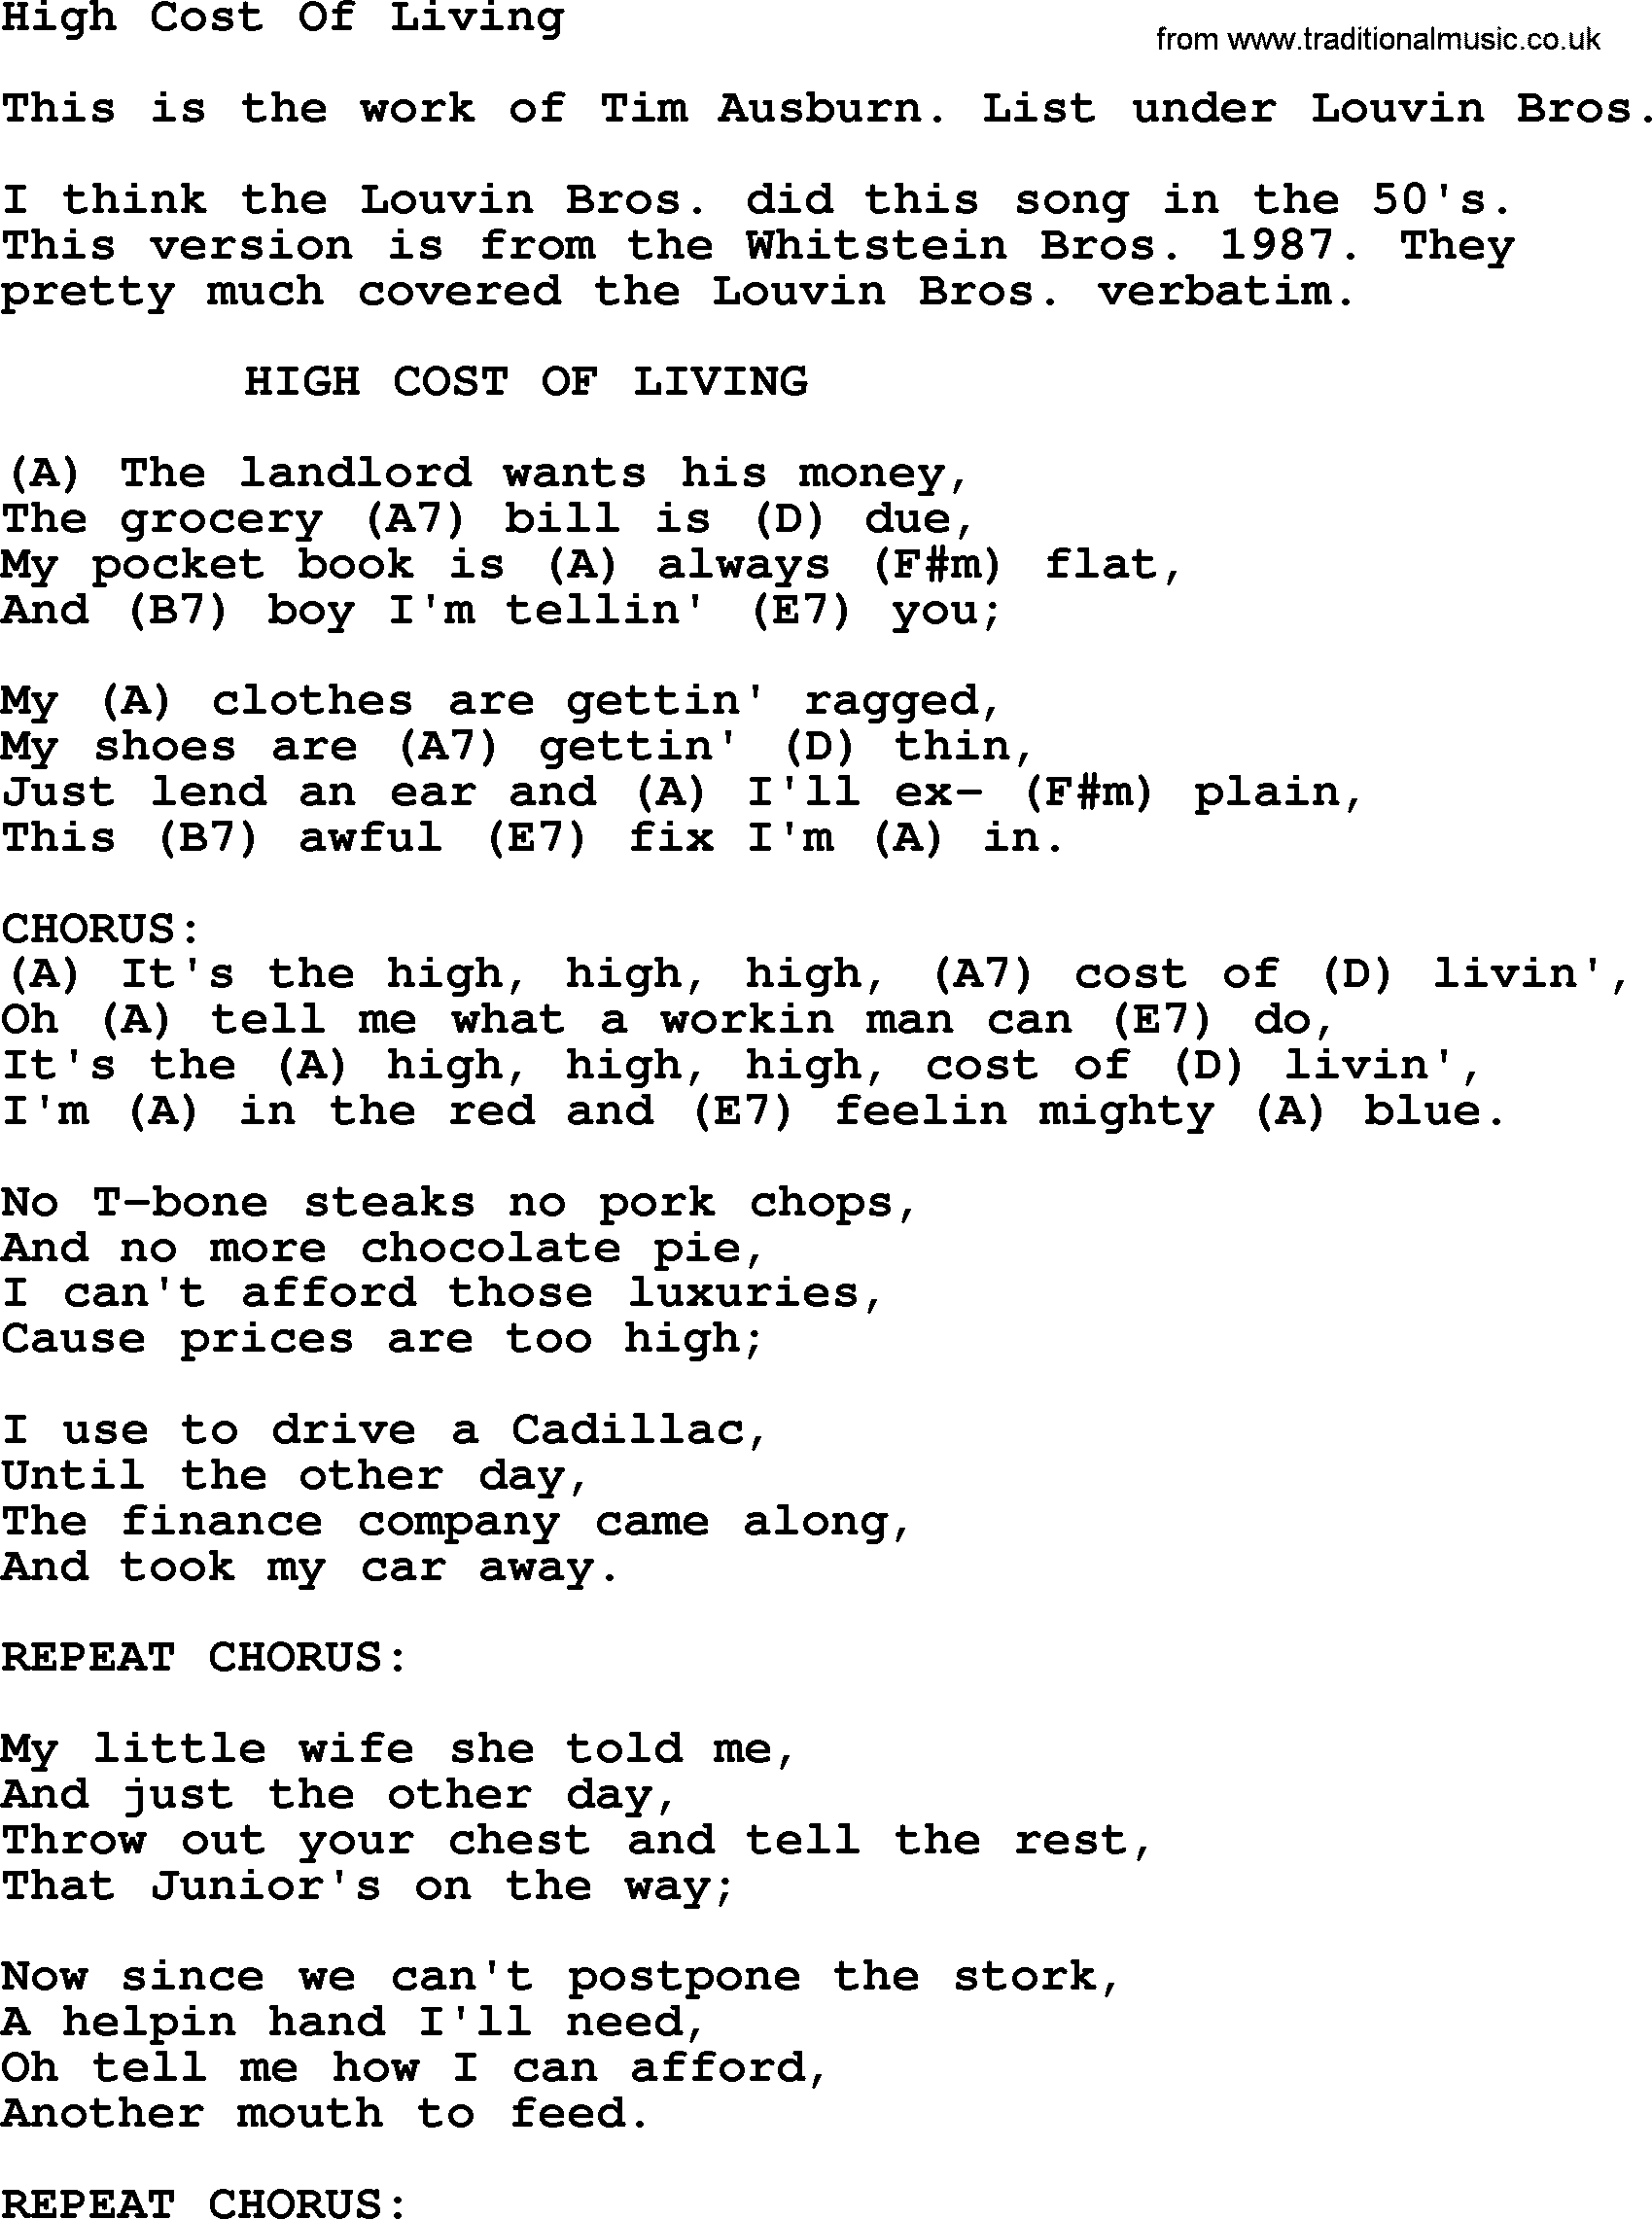 High Cost Of Living - Bluegrass lyrics with chords